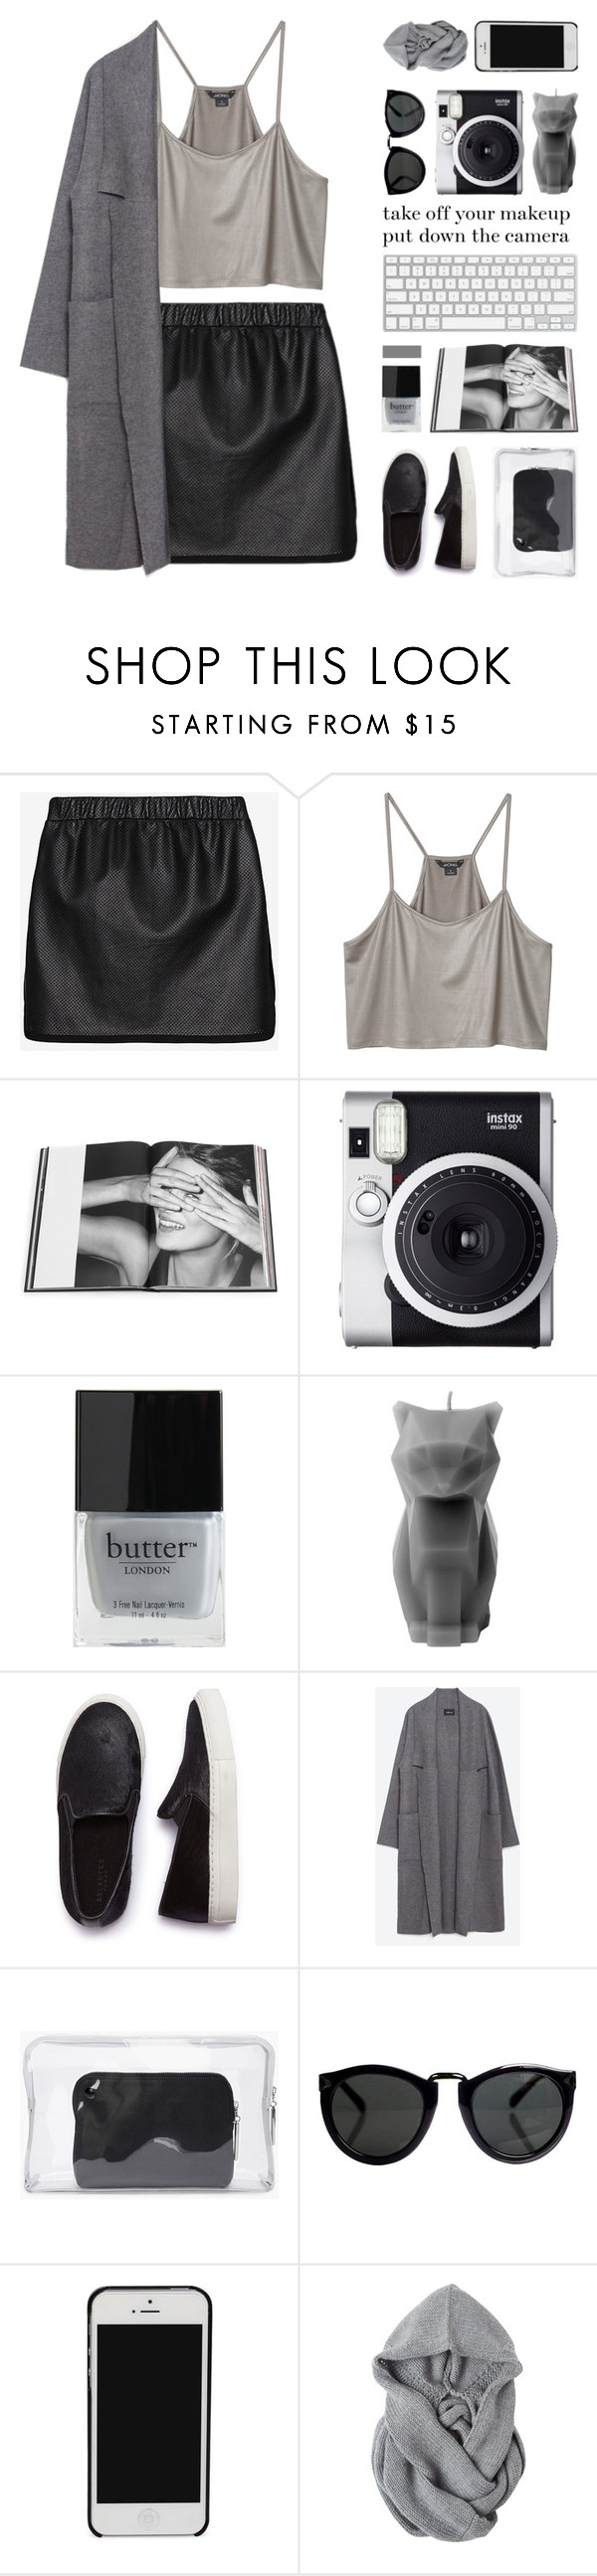 """""""perpetuity"""" by randomn3ss ❤ liked on Polyvore featuring Thakoon Addition, Monki, Rizzoli Publishing, Fuji, Butter London, PyroPet, SELECTED, Zara, 3.1 Phillip Lim and simpleoutfit"""